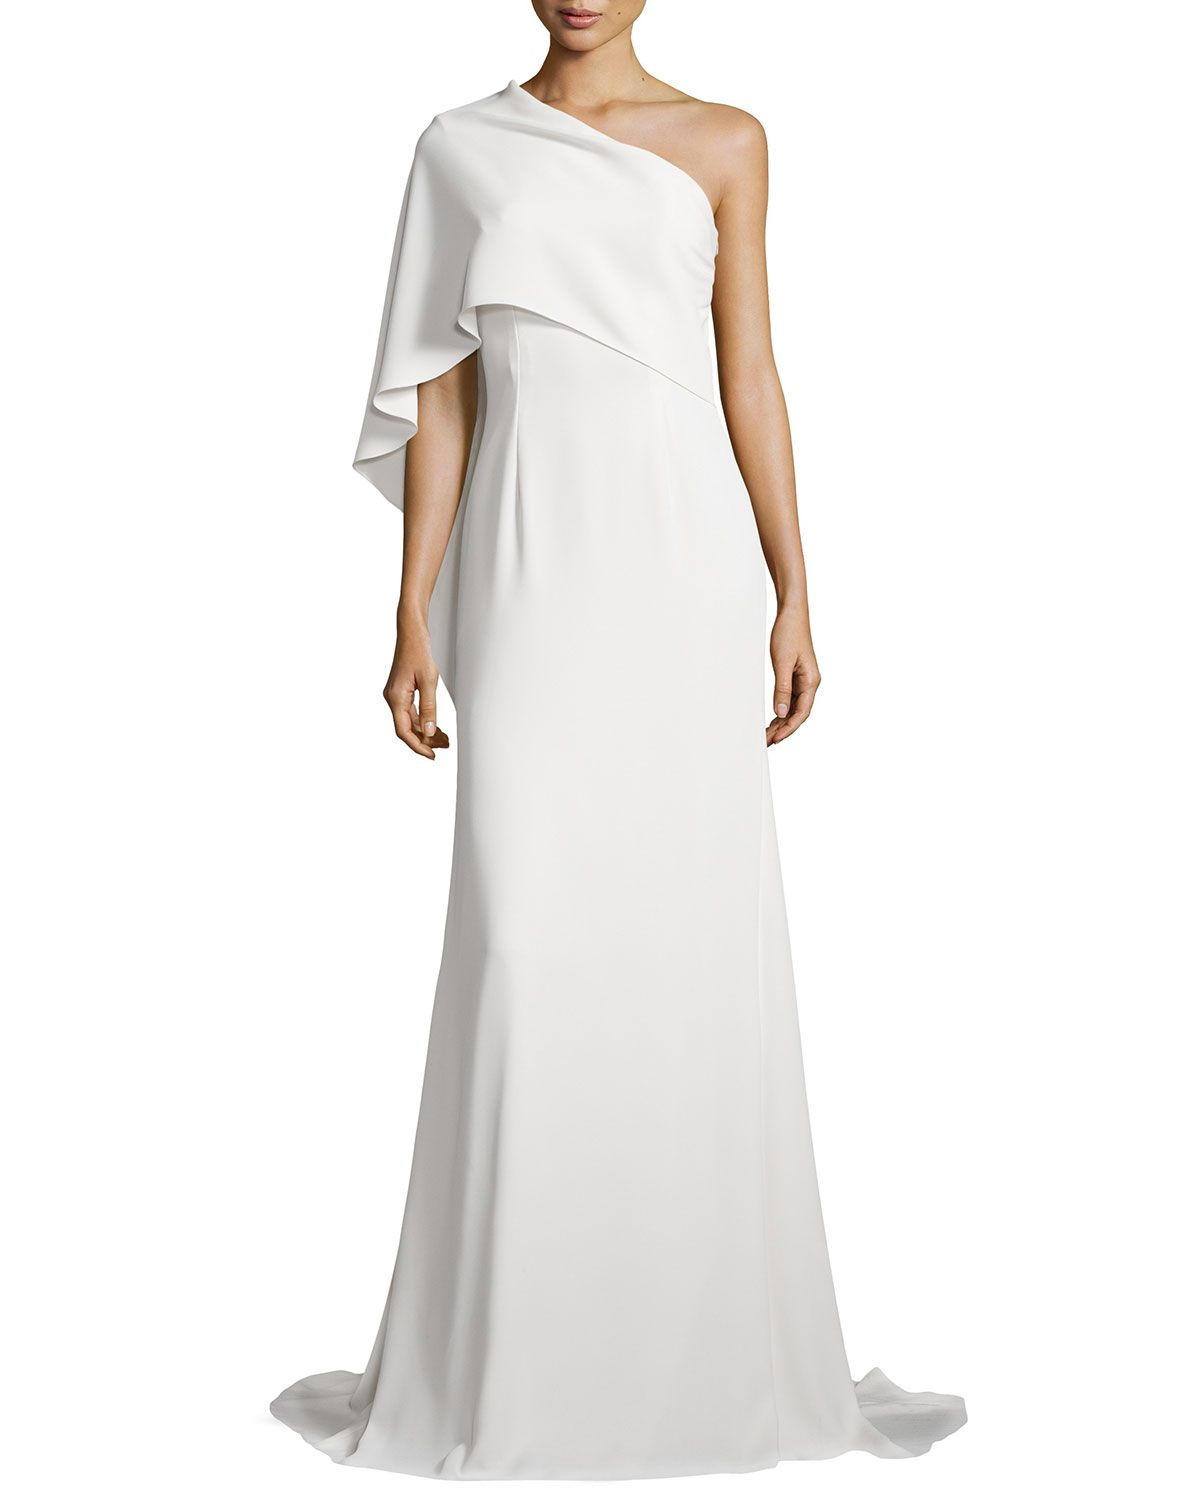 Carmen Marc Valvo One-Shoulder Cape Gown, Ivory | Gorgeous Gowns ...